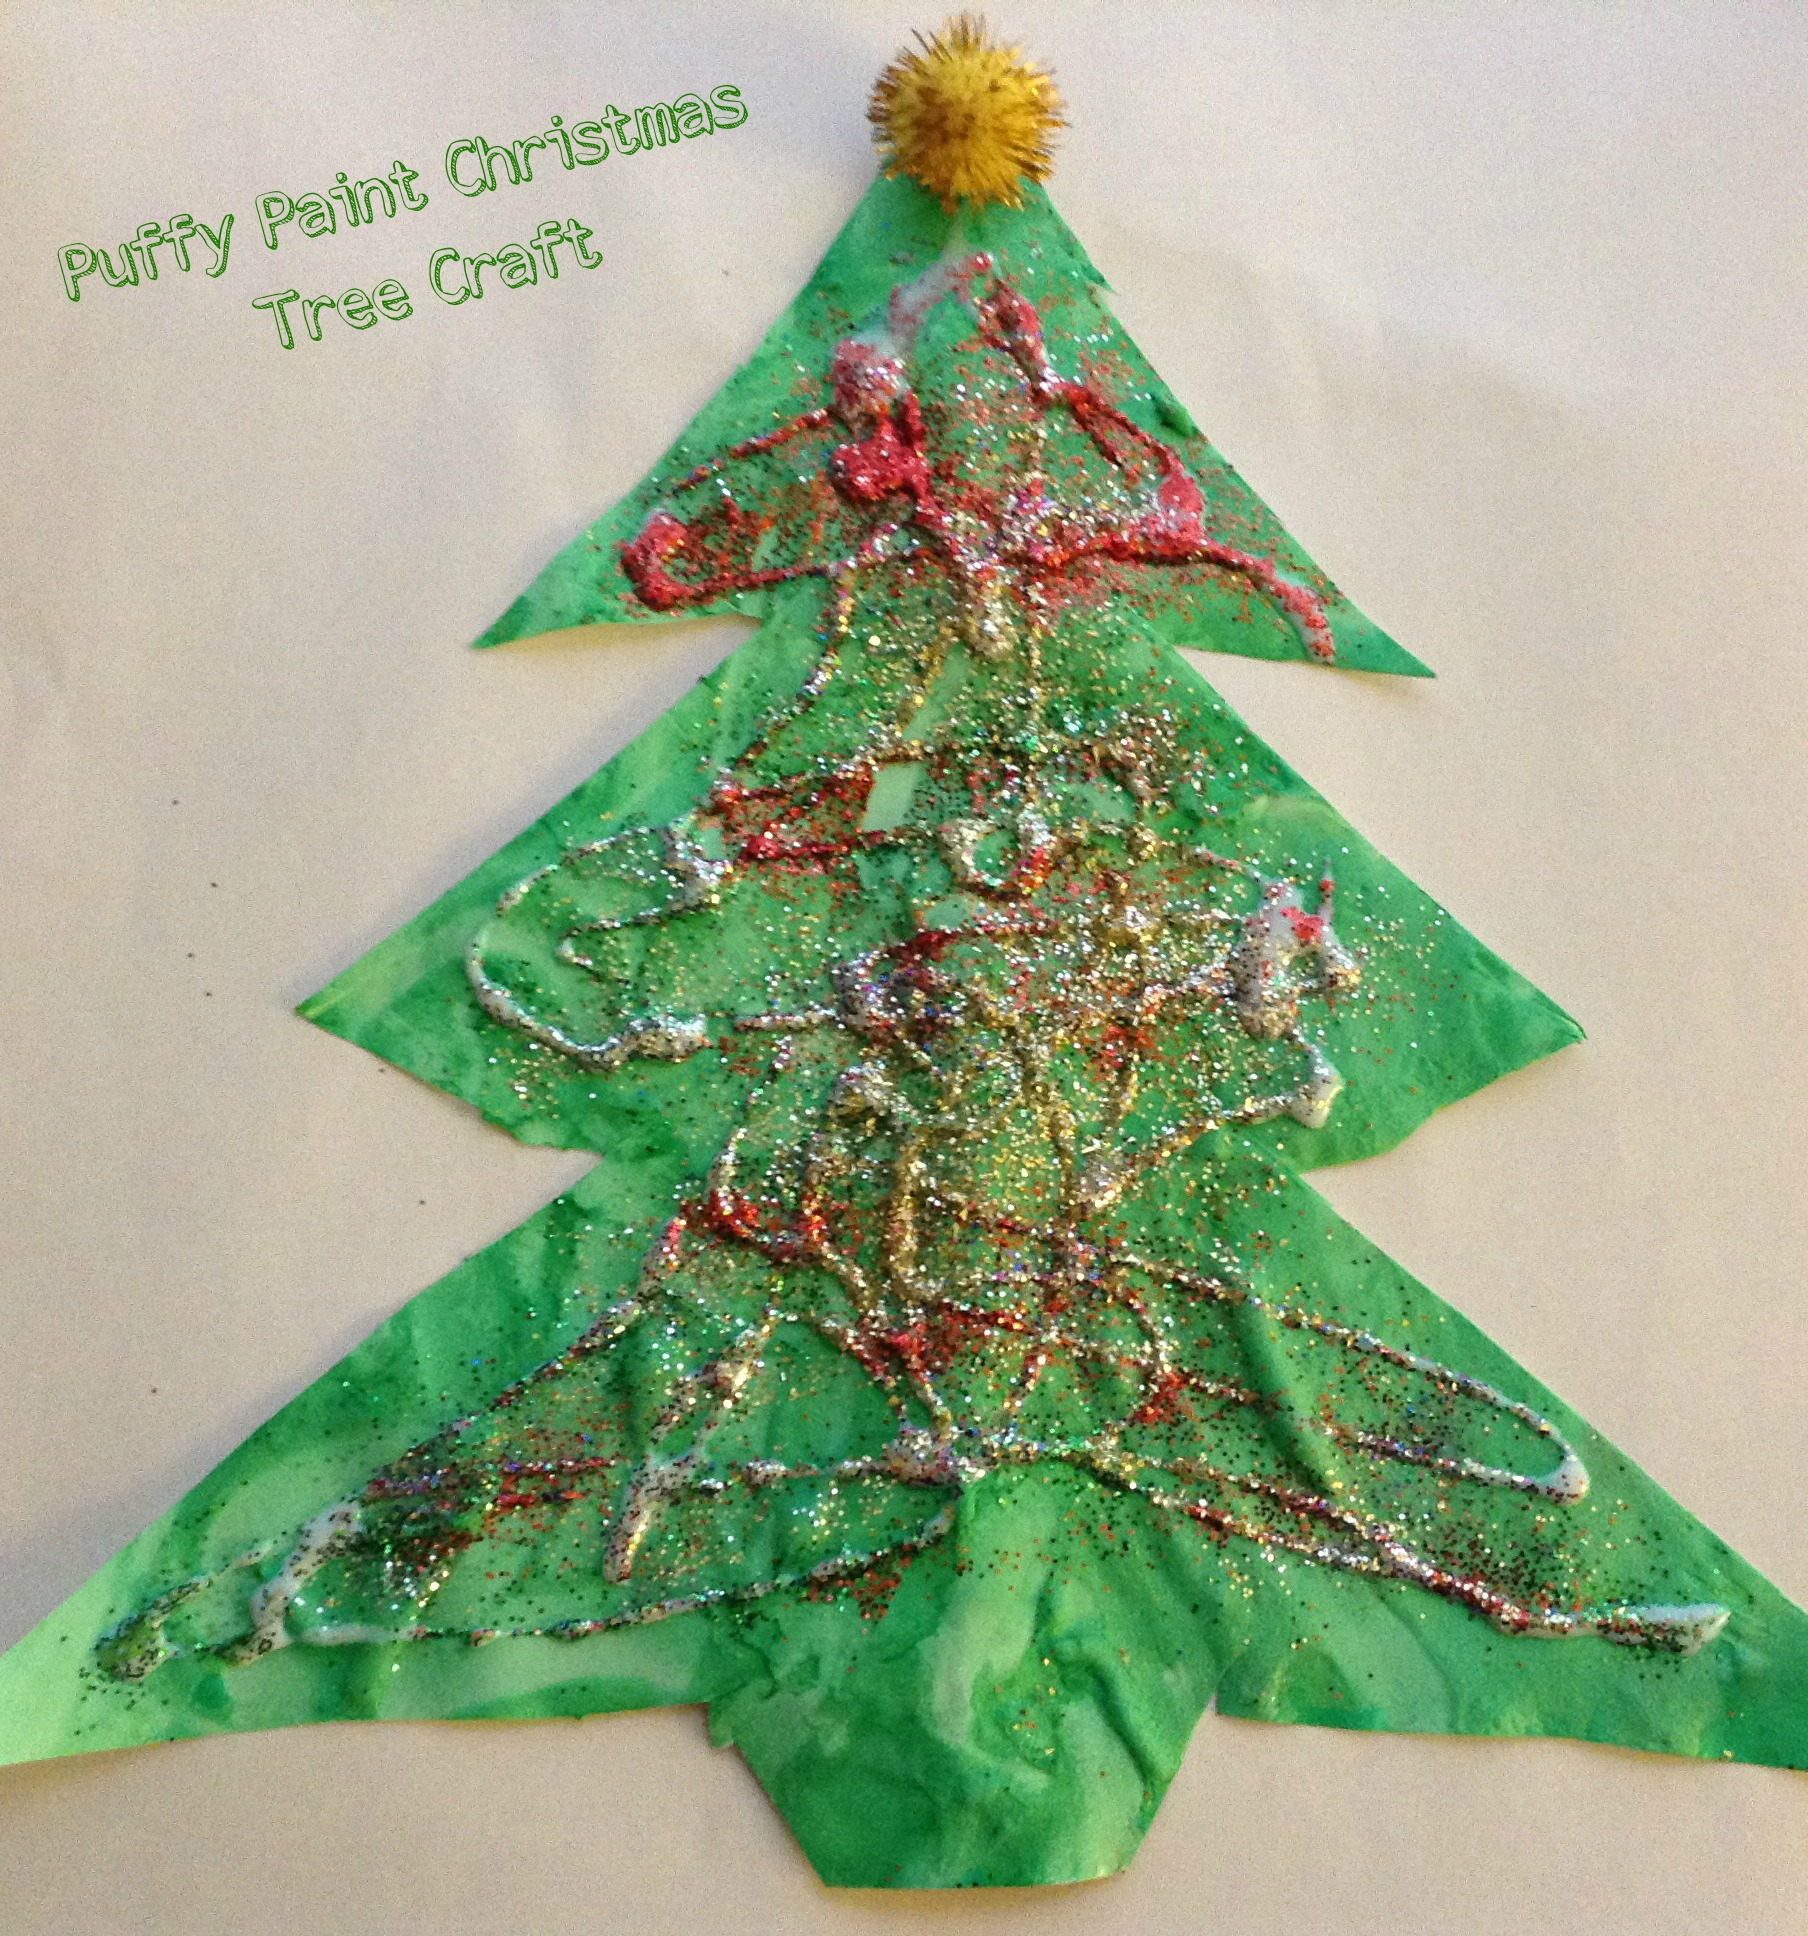 Puffy Paint Christmas Tree Craft